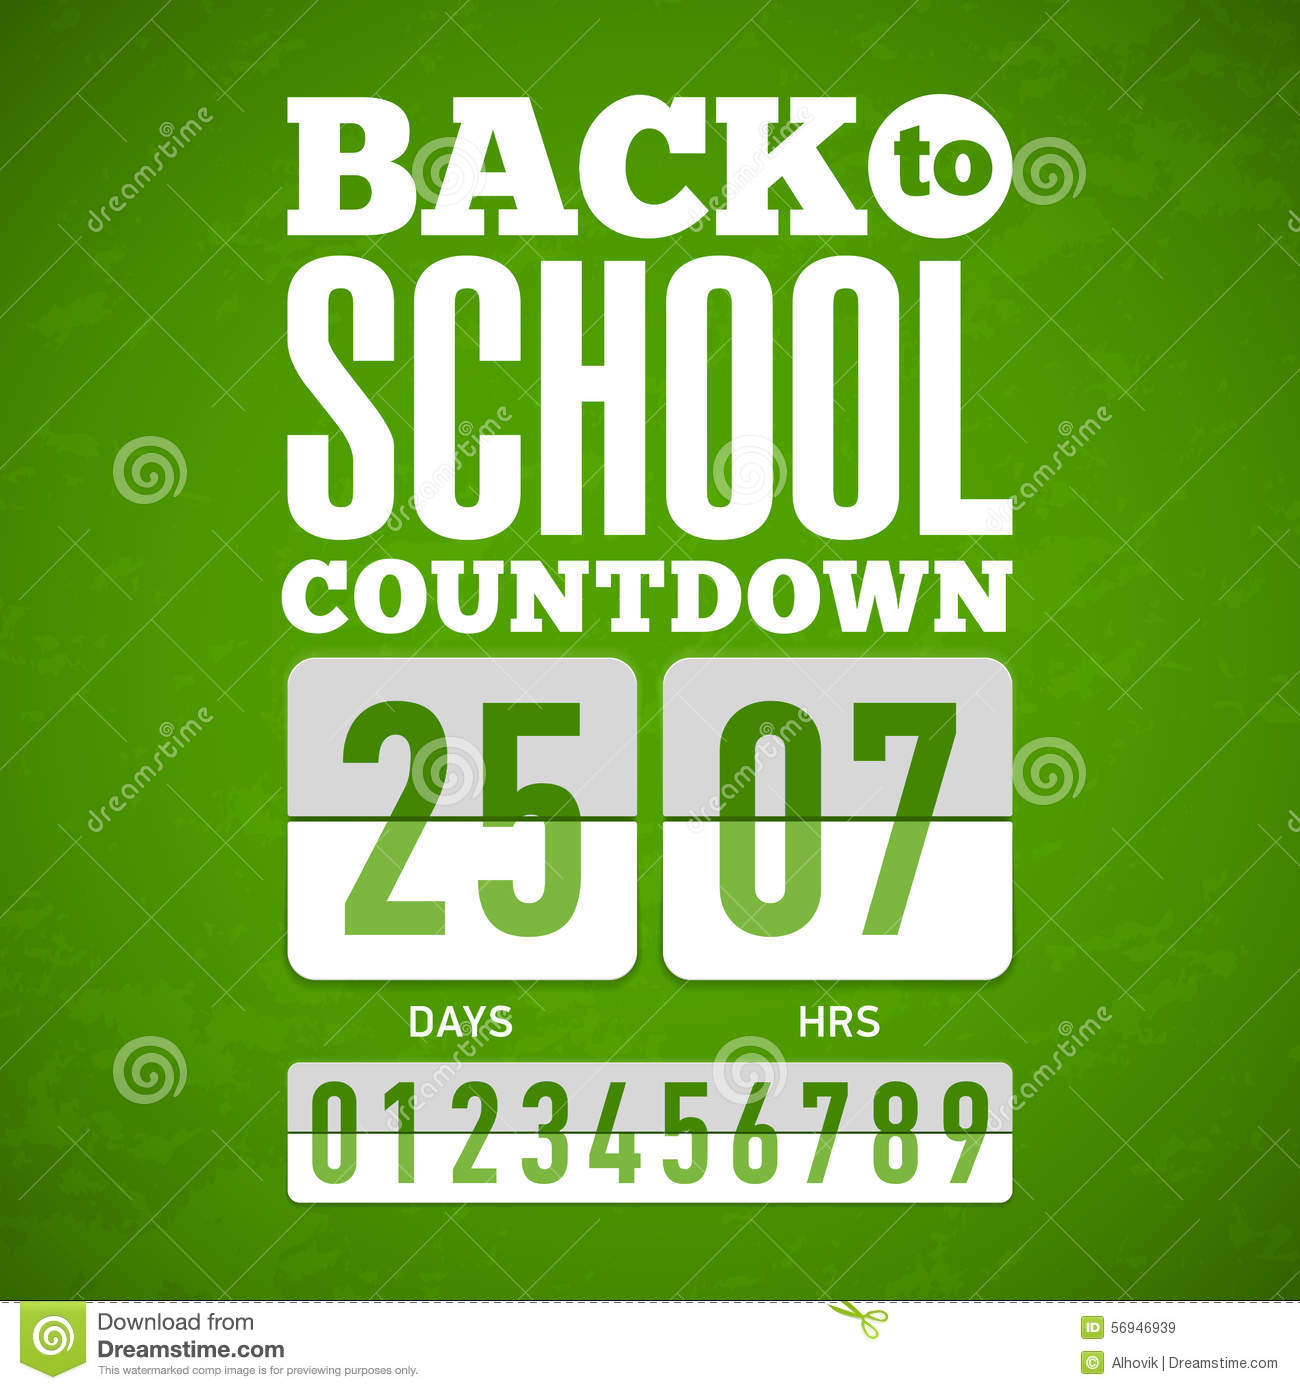 Countdown back to school clipart image black and white Back To School Countdown Stock Vector - Image: 56946939 image black and white